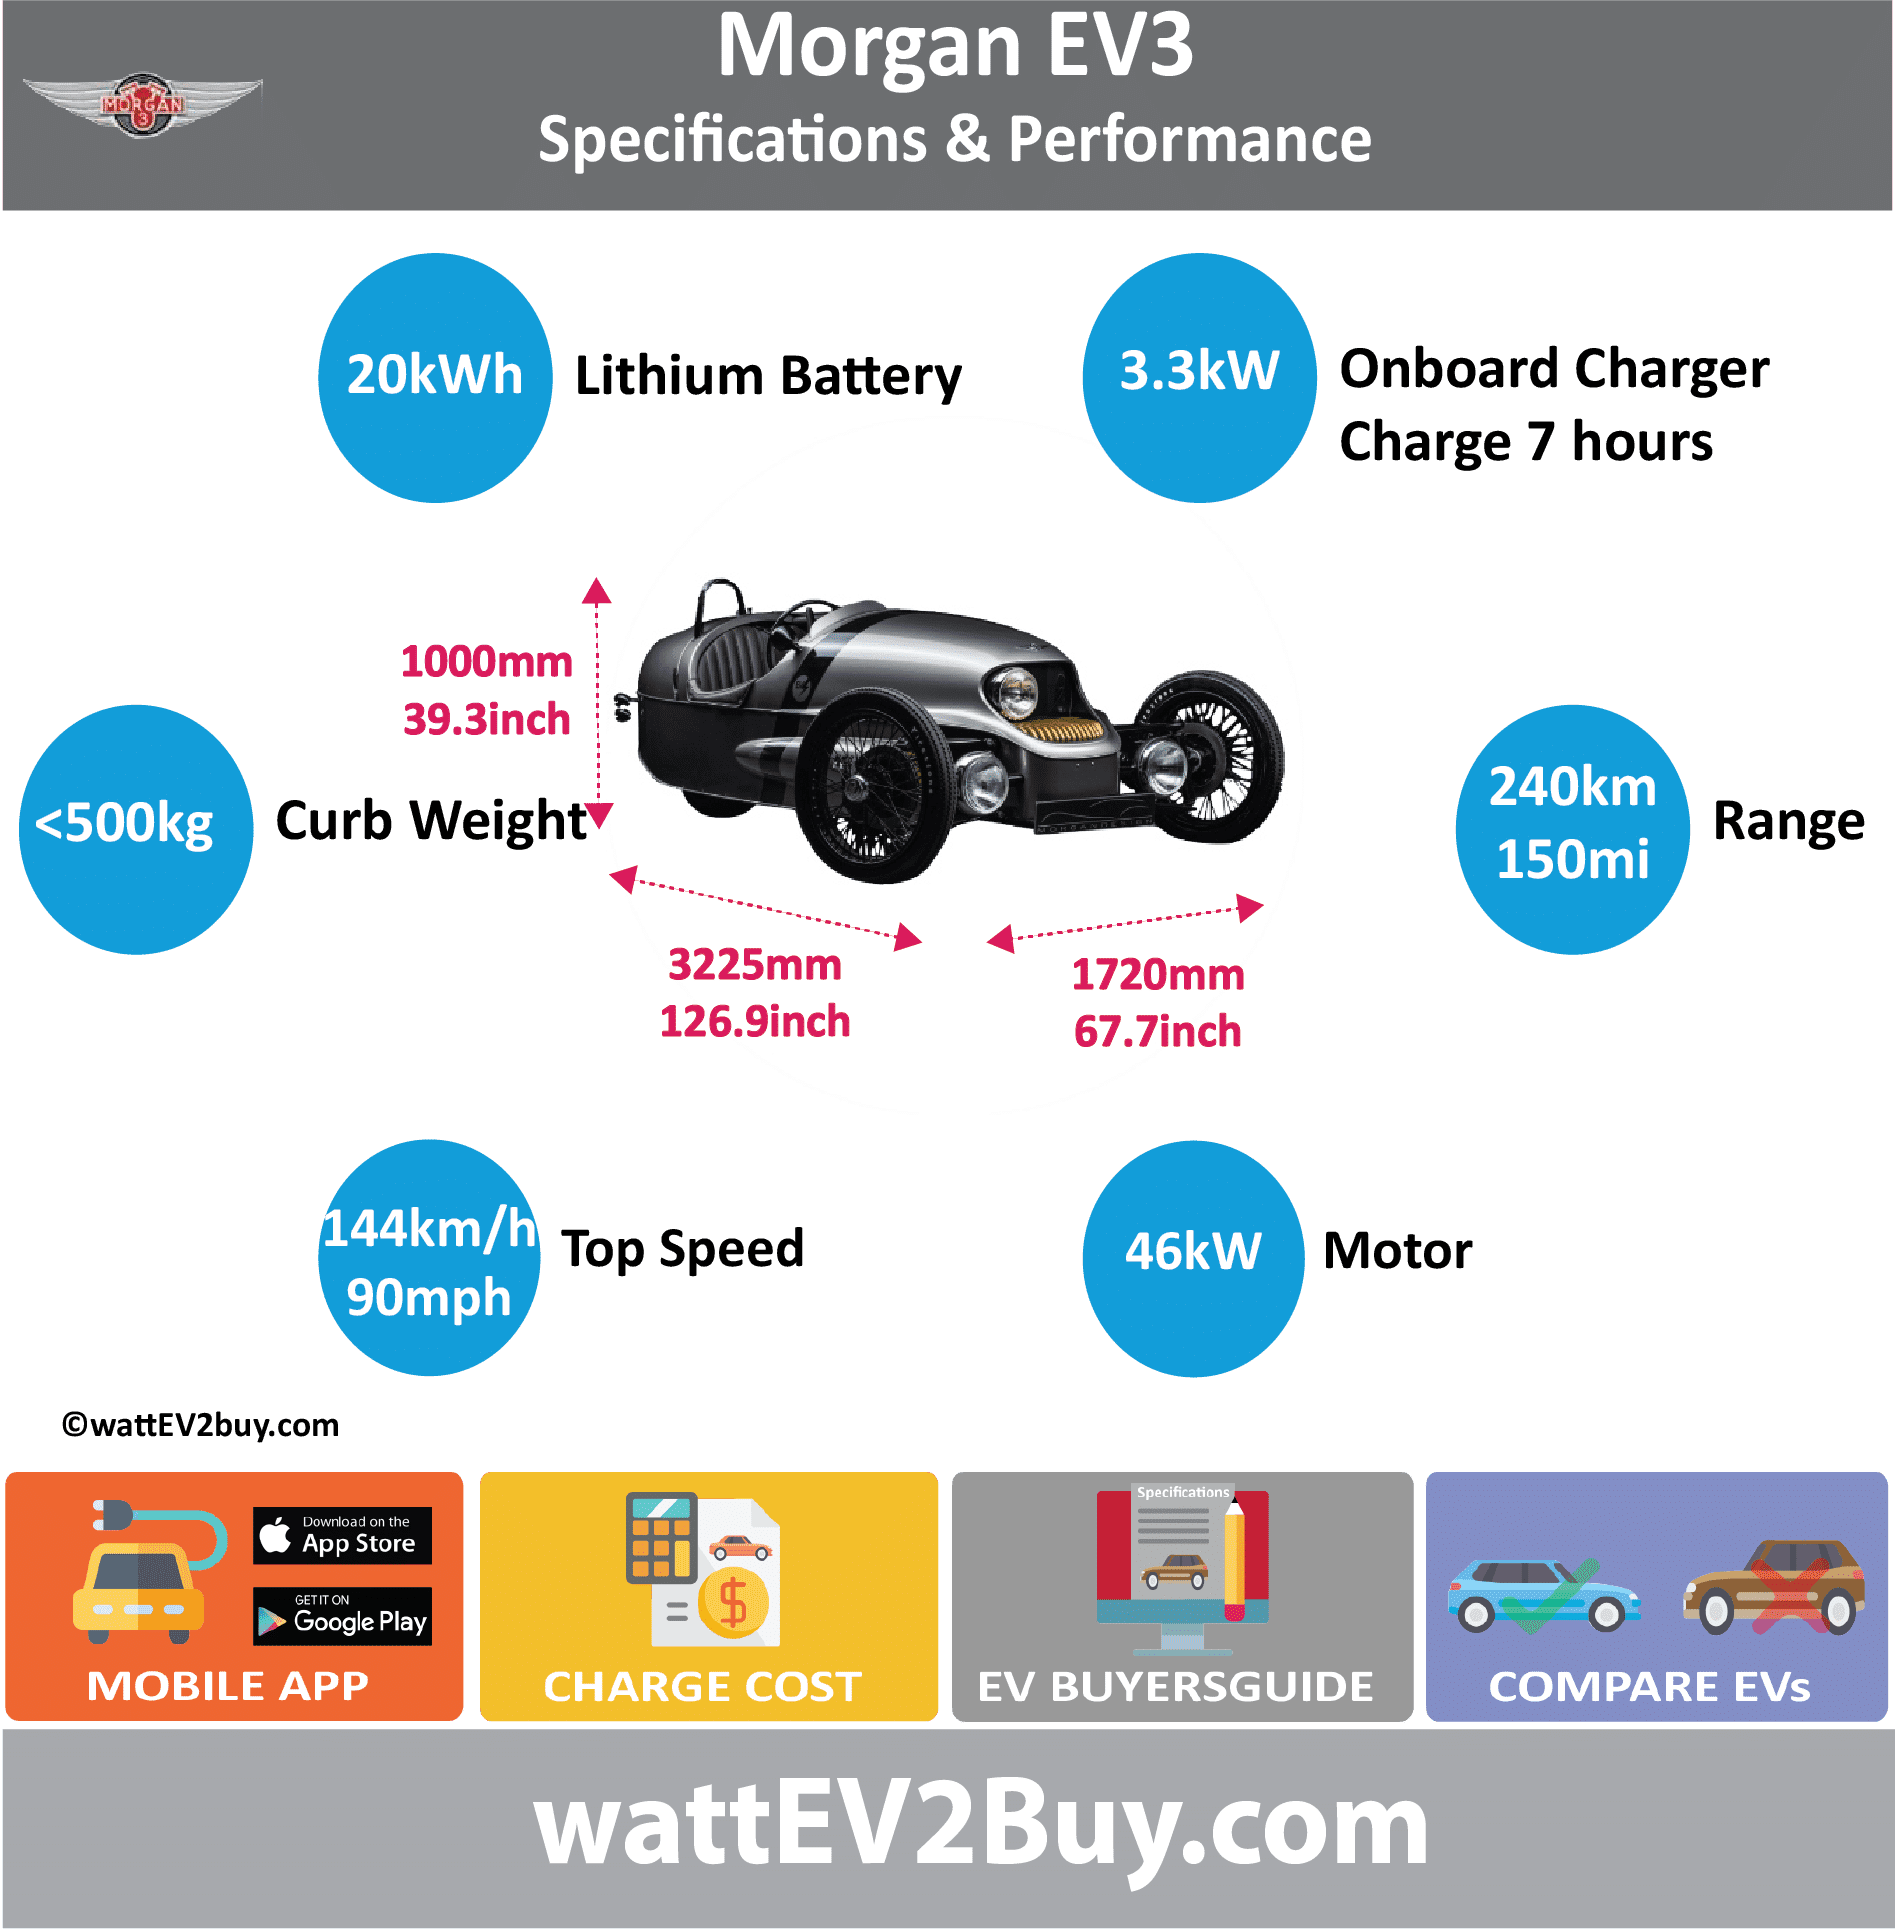 Morgan EV3 specs wattev2Buy.com 2016 Battery Chemistry Battery Capacity kWh 20 Battery Nominal rating kWh Voltage V 120 Amps Ah Cells Modules Efficiency Weight (kg) Cell Type SOC Cooling Liquid Cycles Battery Type Depth of Discharge (DOD) Energy Density Wh/kg Battery Manufacturer Battery Warranty - years Battery Warranty - km Battery Warranty - miles Battery Electric Range - at constant 38mph Battery Electric Range - at constant 60km/h Battery Electric Range - NEDC Mi 150 Battery Electric Range - NEDC km 240 Battery Electric Range - CCM Mi Battery Electric Range - CCM km Battery Electric Range - EPA Mi Battery Electric Range - EPA km Electric Top Speed - mph 90 Electric Top Speed - km/h 144 Acceleration 0 - 100km/h sec Acceleration 0 - 50km/h sec Acceleration 0 - 62mph sec 9 Acceleration 0 - 60mph sec Acceleration 0 - 37.2mph sec Wireless Charging Direct Current Fast Charge kW Charger Efficiency Onboard Charger kW 3.3 Onboard Charger Optional kW Charging Cord - amps Charging Cord - volts LV 1 Charge kW LV 1 Charge Time (Hours) LV 2 Charge kW LV 2 Charge Time (Hours) 4 LV 3 CCS/Combo kW LV 3 Charge Time (min to 70%) LV 3 Charge Time (min to 80%) LV 3 Charge Time (mi) LV 3 Charge Time (km) Supercharger Charging System kW Charger Output Charge Connector Power Outlet kW Power Outlet Amps MPGe Combined - miles MPGe Combined - km MPGe City - miles MPGe City - km MPGe Highway - miles MPGe Highway - km Max Power - hp (Electric Max) Max Power - kW (Electric Max) Max Torque - lb.ft (Electric Max) Max Torque - N.m (Electric Max) Drivetrain Generator Motor Type Electric Motor Output kW Electric Motor Output hp Transmission Electric Motor - Rear Max Power - hp (Rear) 62 Max Power - kW (Rear) 46 Max Torque - lb.ft (Rear) Max Torque - N.m (Rear) Electric Motor - Front Max Power - hp (Front) Max Power - kW (Front) Max Torque - lb.ft (Front) Max Torque - N.m (Front) Energy Consumption kWh/100km Energy Consumption kWh/100miles Deposit GB Battery Lease per month EU Battery Lease per month MSRP (expected) EU MSRP (before incentives & destination) GB MSRP (before incentives & destination) £33,000.00 US MSRP (before incentives & destination) CHINA MSRP (before incentives & destination) MSRP after incentives Vehicle Trims Doors Seating 2 Dimensions Luggage (L) GVWR (kg) GVWR (lbs) Curb Weight (kg) Curb Weight (lbs) Payload Capacity (kg) Payload Capacity (lbs) Towing Capacity (lbs) Max Load Height (m) Ground Clearance (inc) Ground Clearance (mm) Height (inc) 39.3 Height (mm) 1000 Lenght (inc) 126.9 Lenght (mm) 3225 Wheelbase (inc) Wheelbase (mm) Width (inc) 67.7 Width (mm) 1720 Other Utility Factor Auto Show Unveil Availability Market Segment Class Safety Level Unveiled Relaunch First Delivery Chassis designed Based On AKA Self-Driving System SAE Autonomous Level Connectivity Unique Extras Incentives Home Charge Installation Public Charging Subsidy Chinese Name WEBSITE